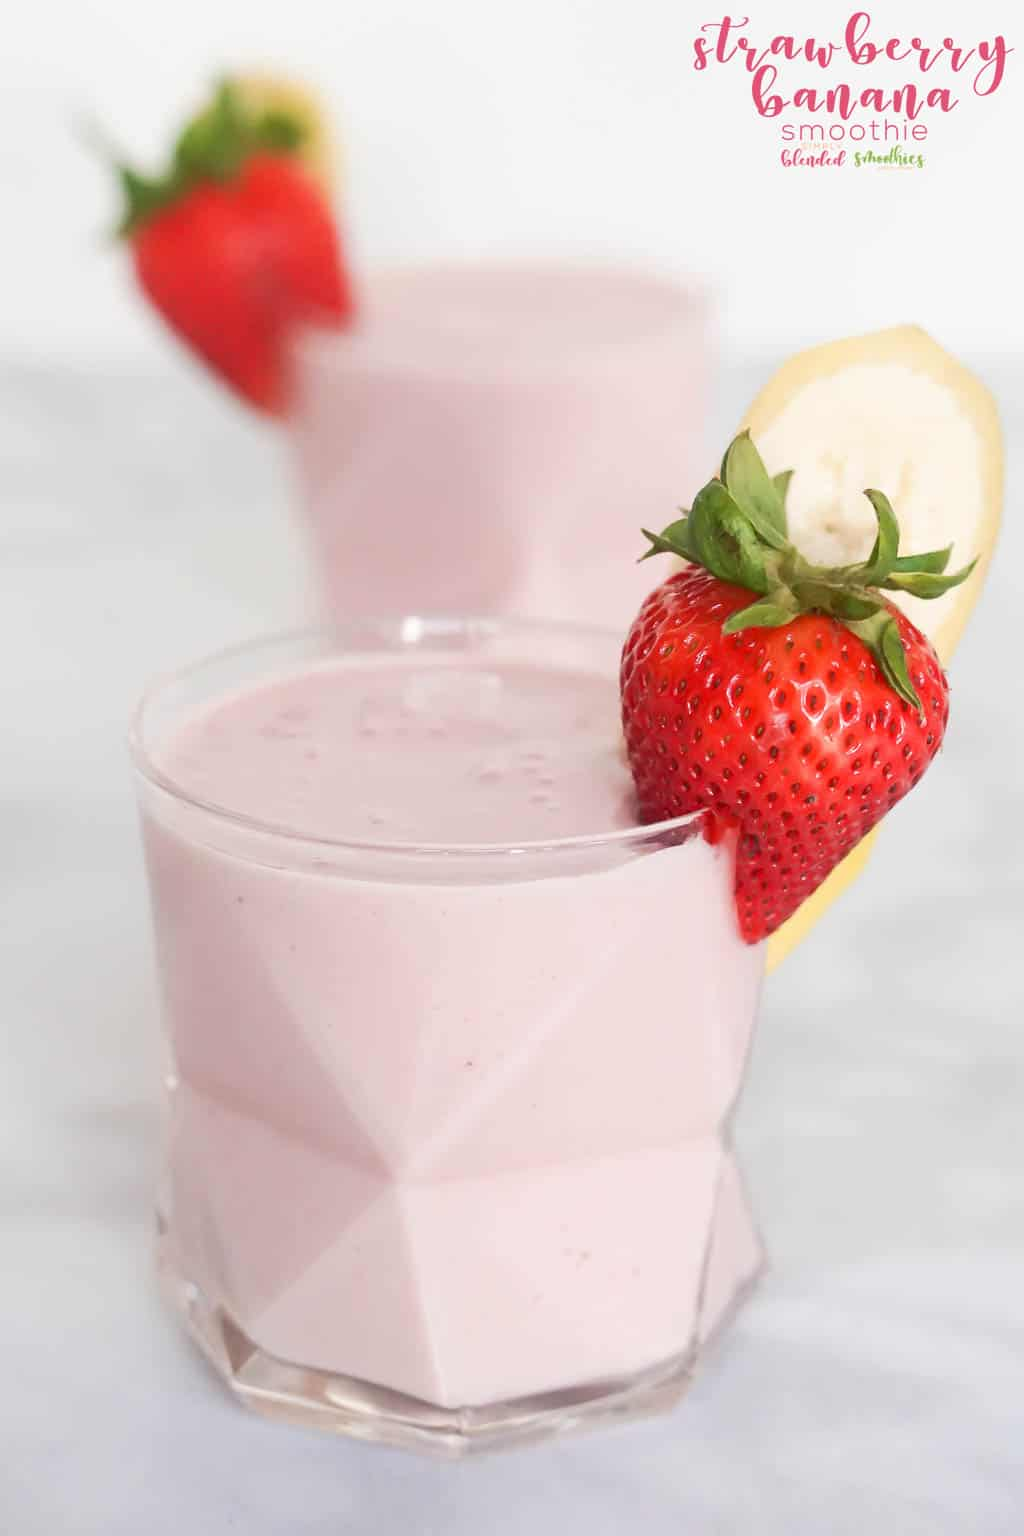 Simple and Delicious Strawberry Banana Smoothie